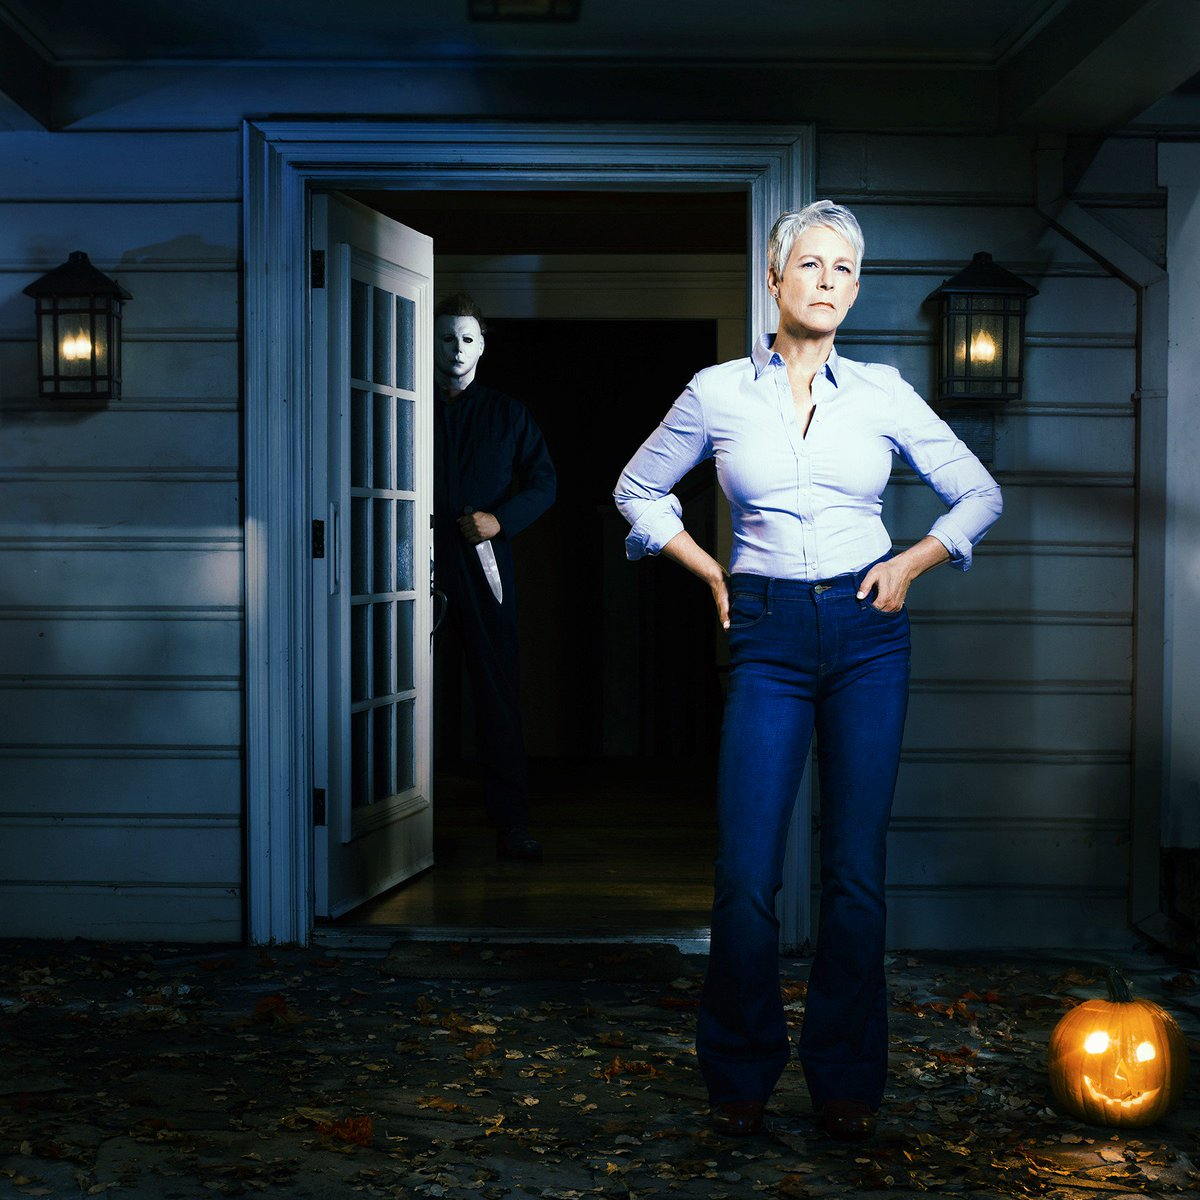 .@jamieleecurtis returns to her iconic role as Laurie Strode in #Halloween ,released by Universal Pictures October 19, 2018. #HalloweenMovie https://t.co/95tWGD5CL4